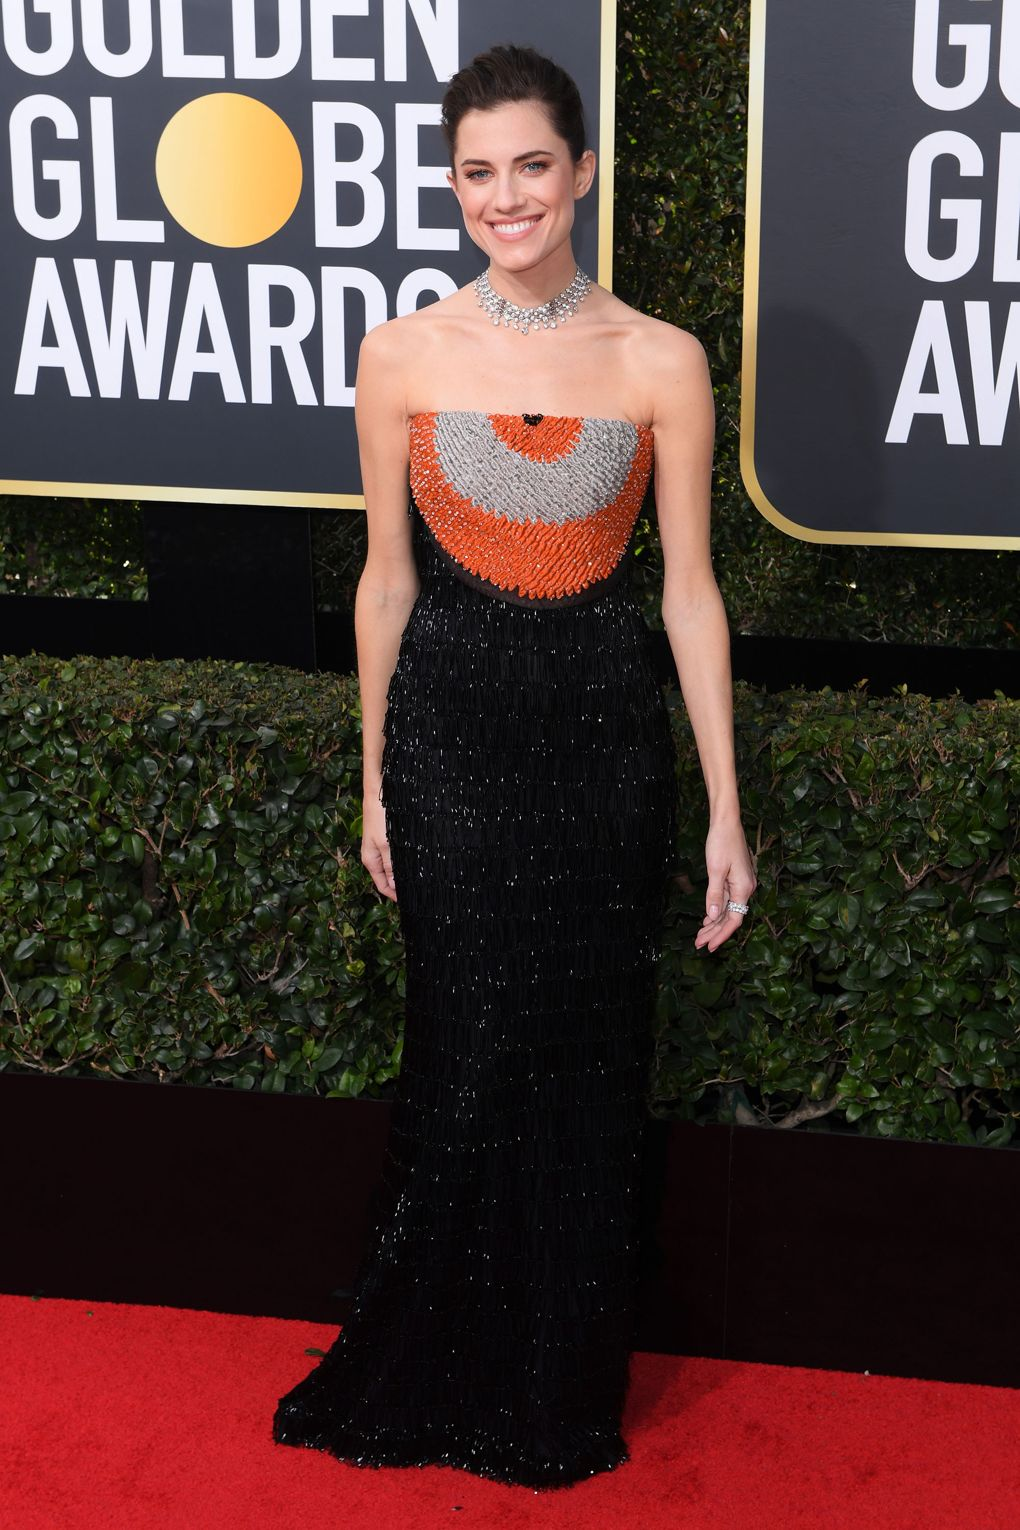 golden globes 2019 - photo #22